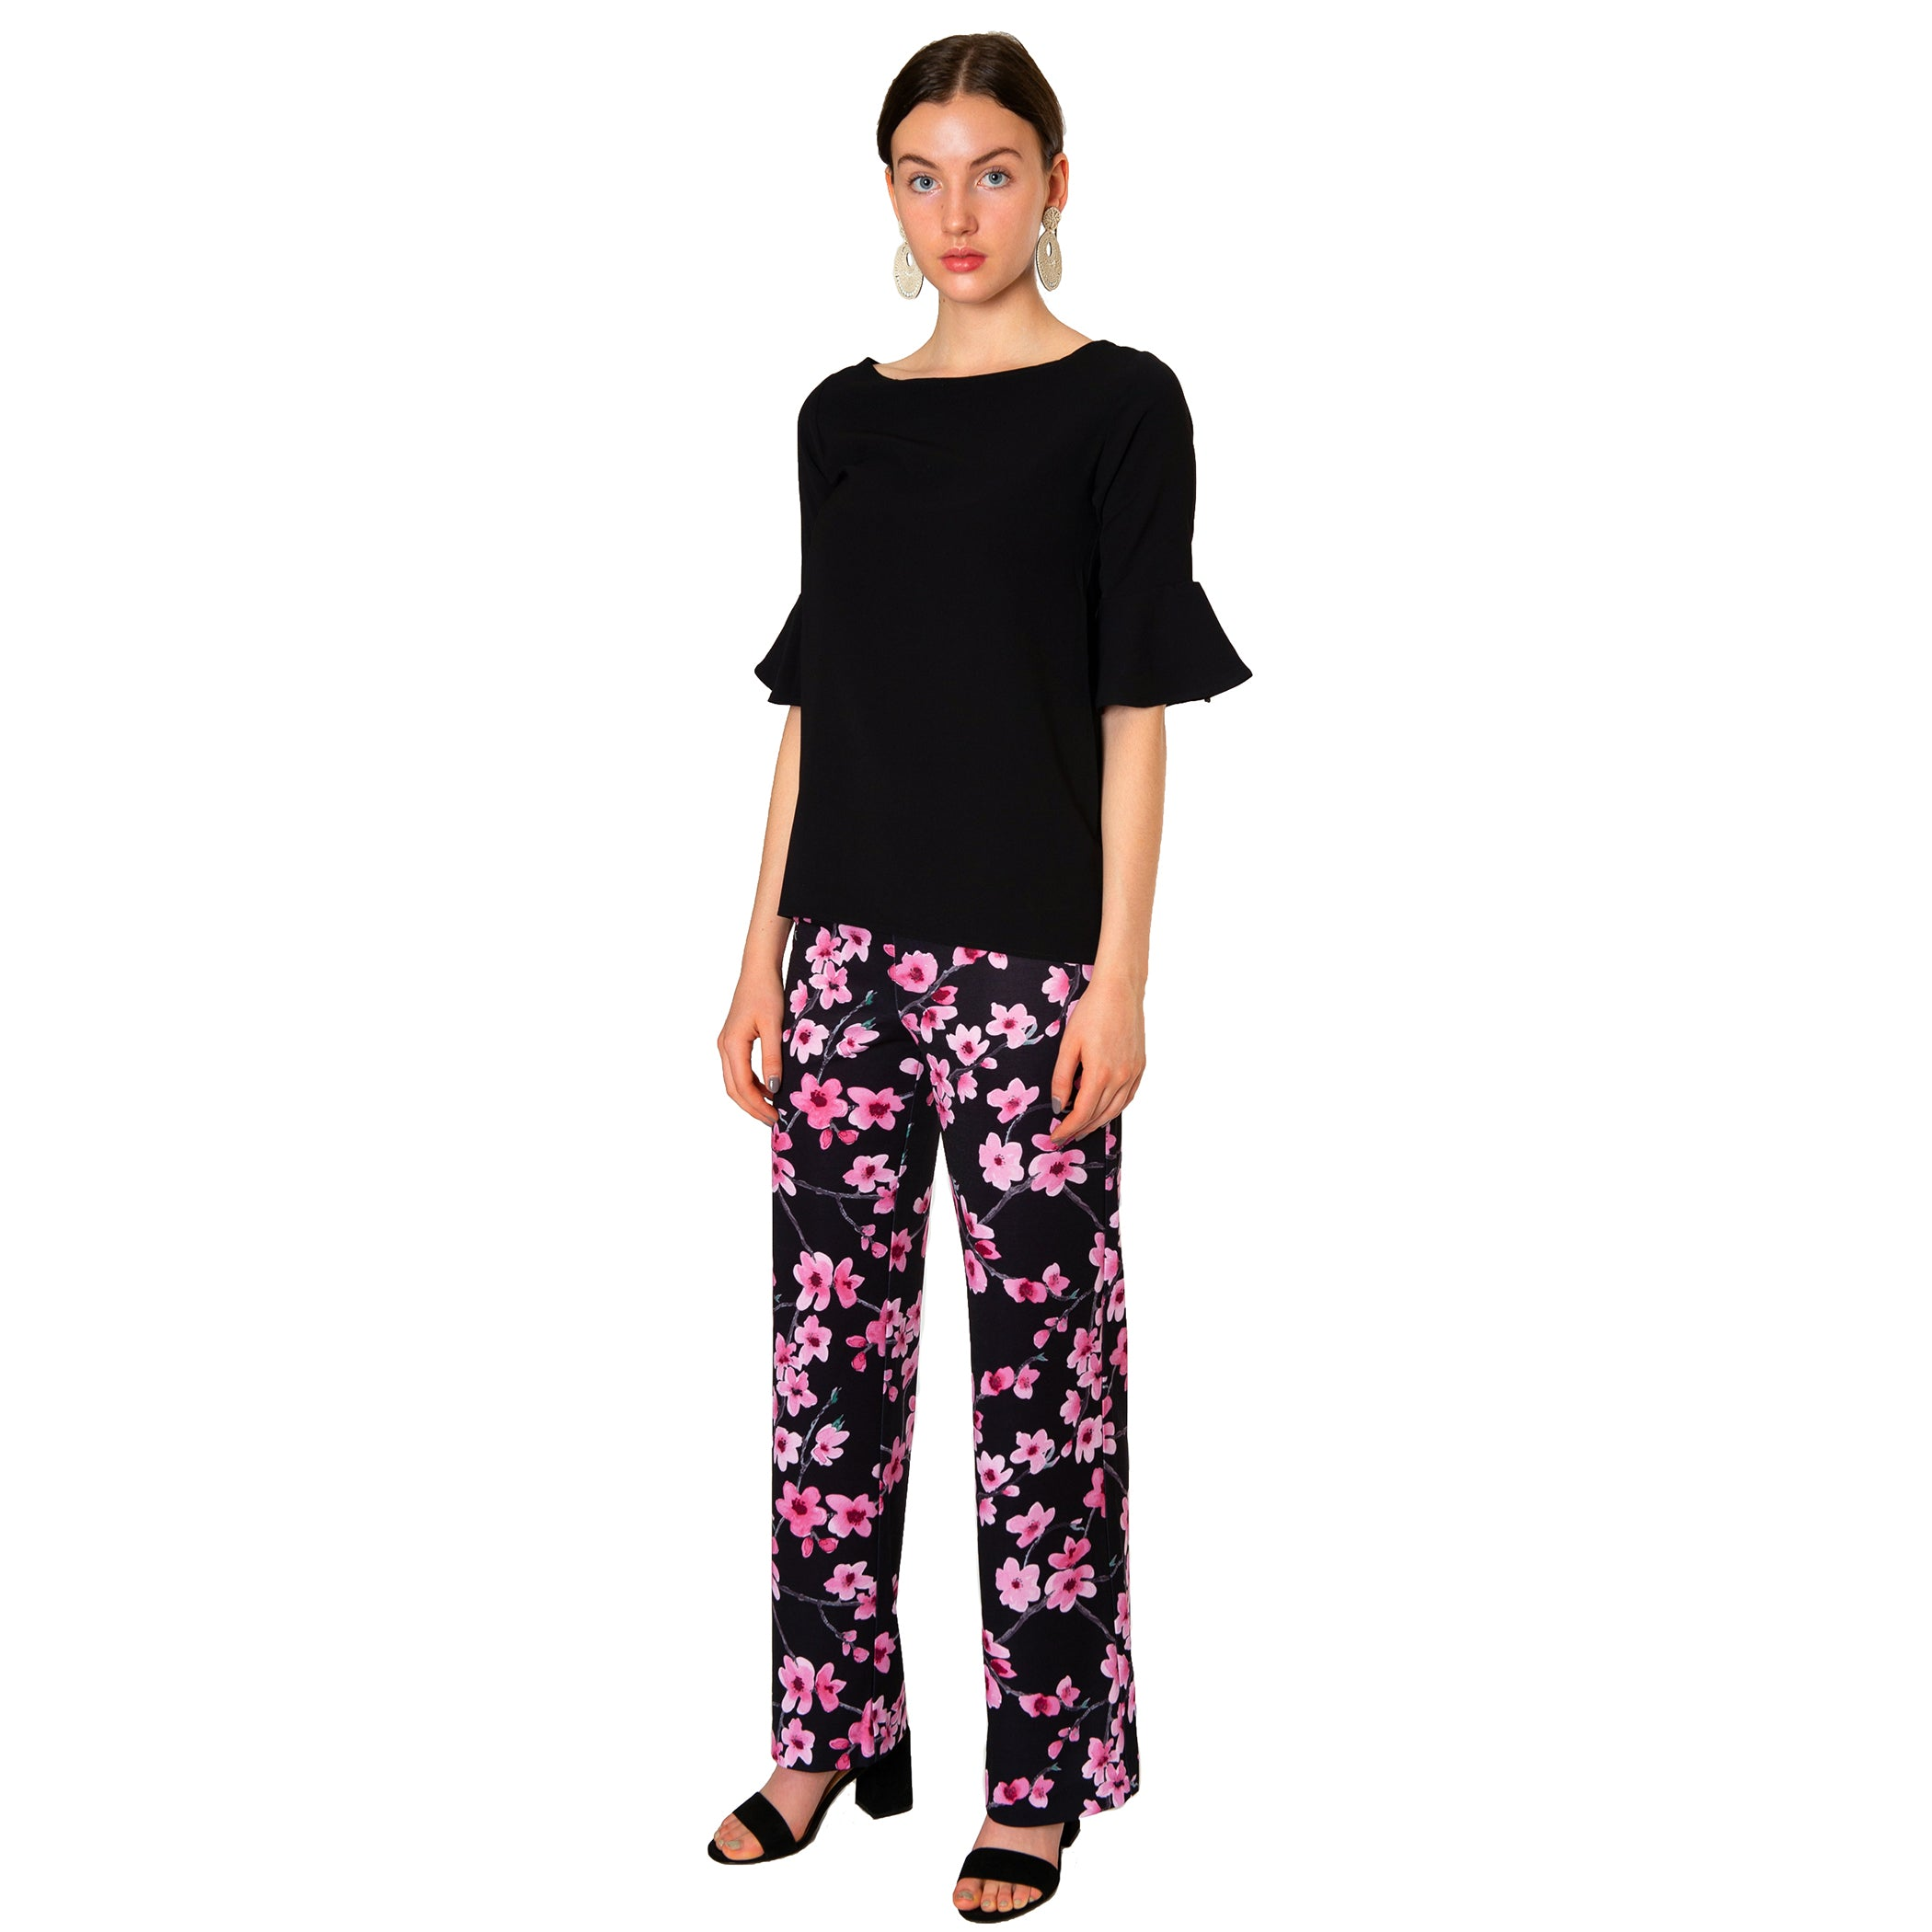 Toby Palazzo Pant in Cherry Blossom - Elizabeth Ackerman New York